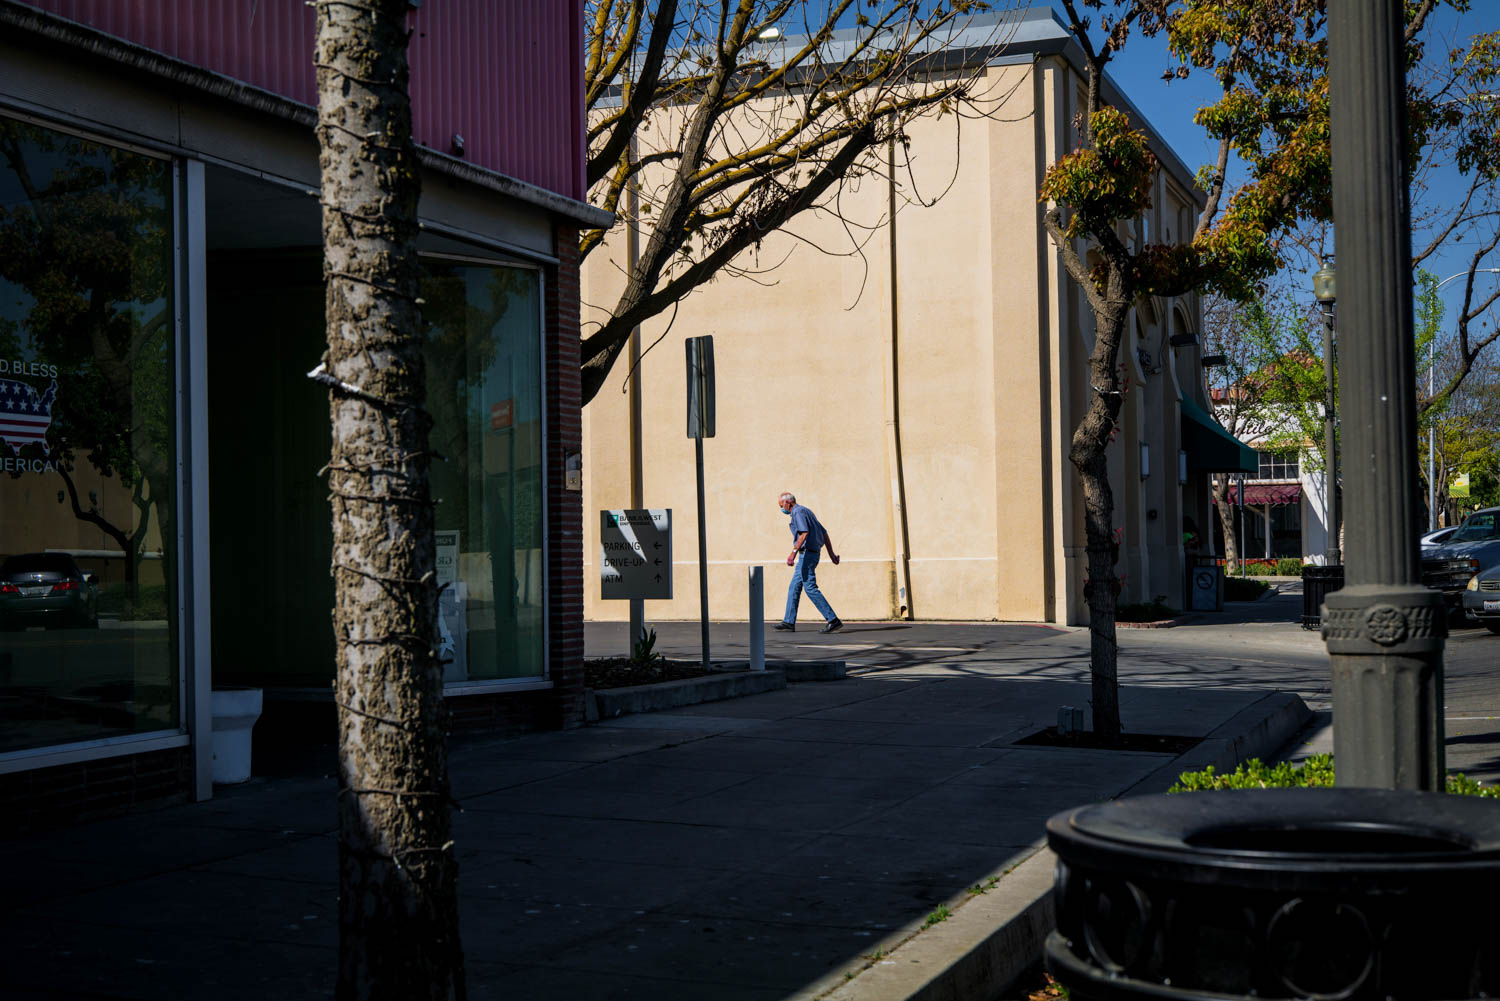 A man walks through a parking lot on Whitley Avenue in Corcoran, CA.